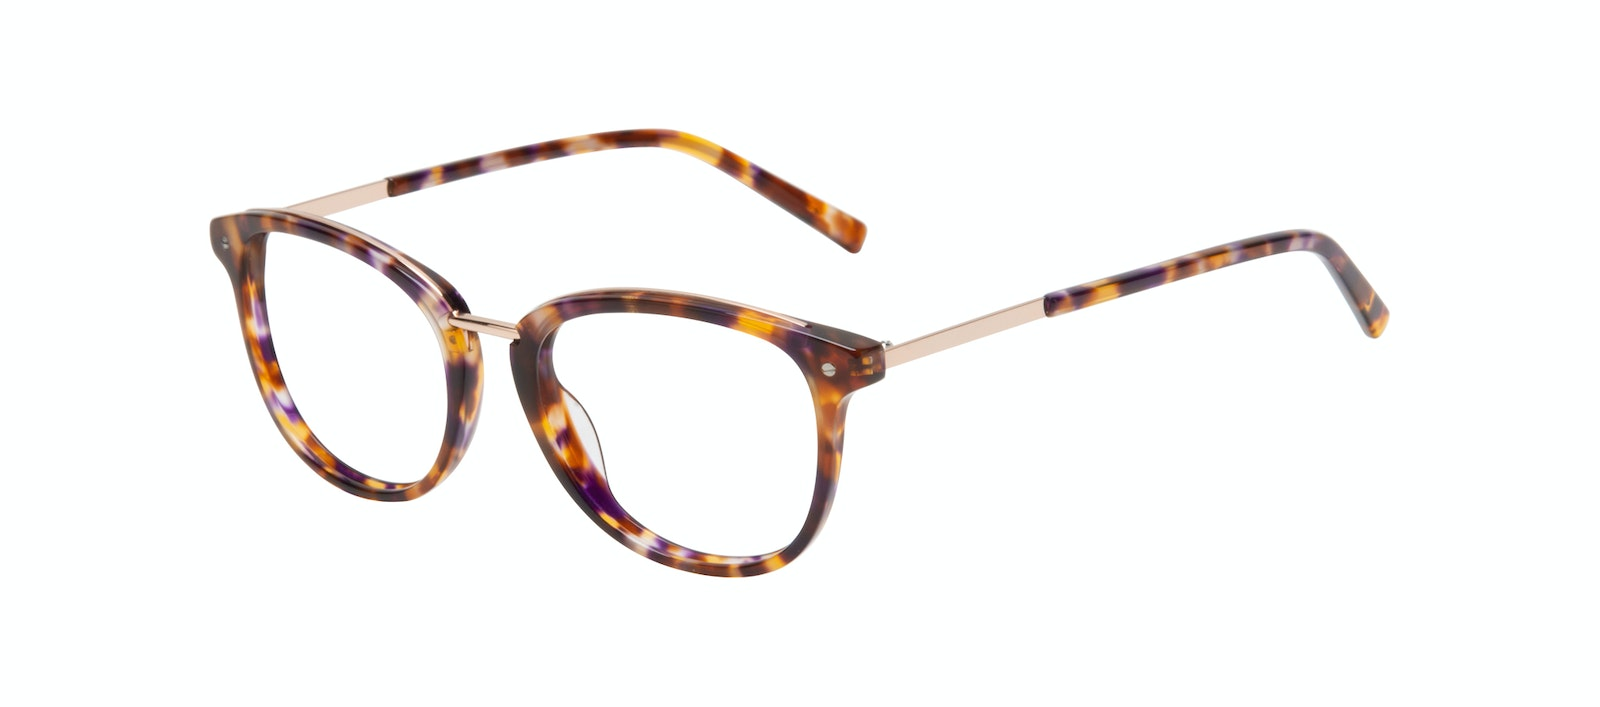 Affordable Fashion Glasses Round Eyeglasses Women Bella Petite Dark Tortoise Tilt